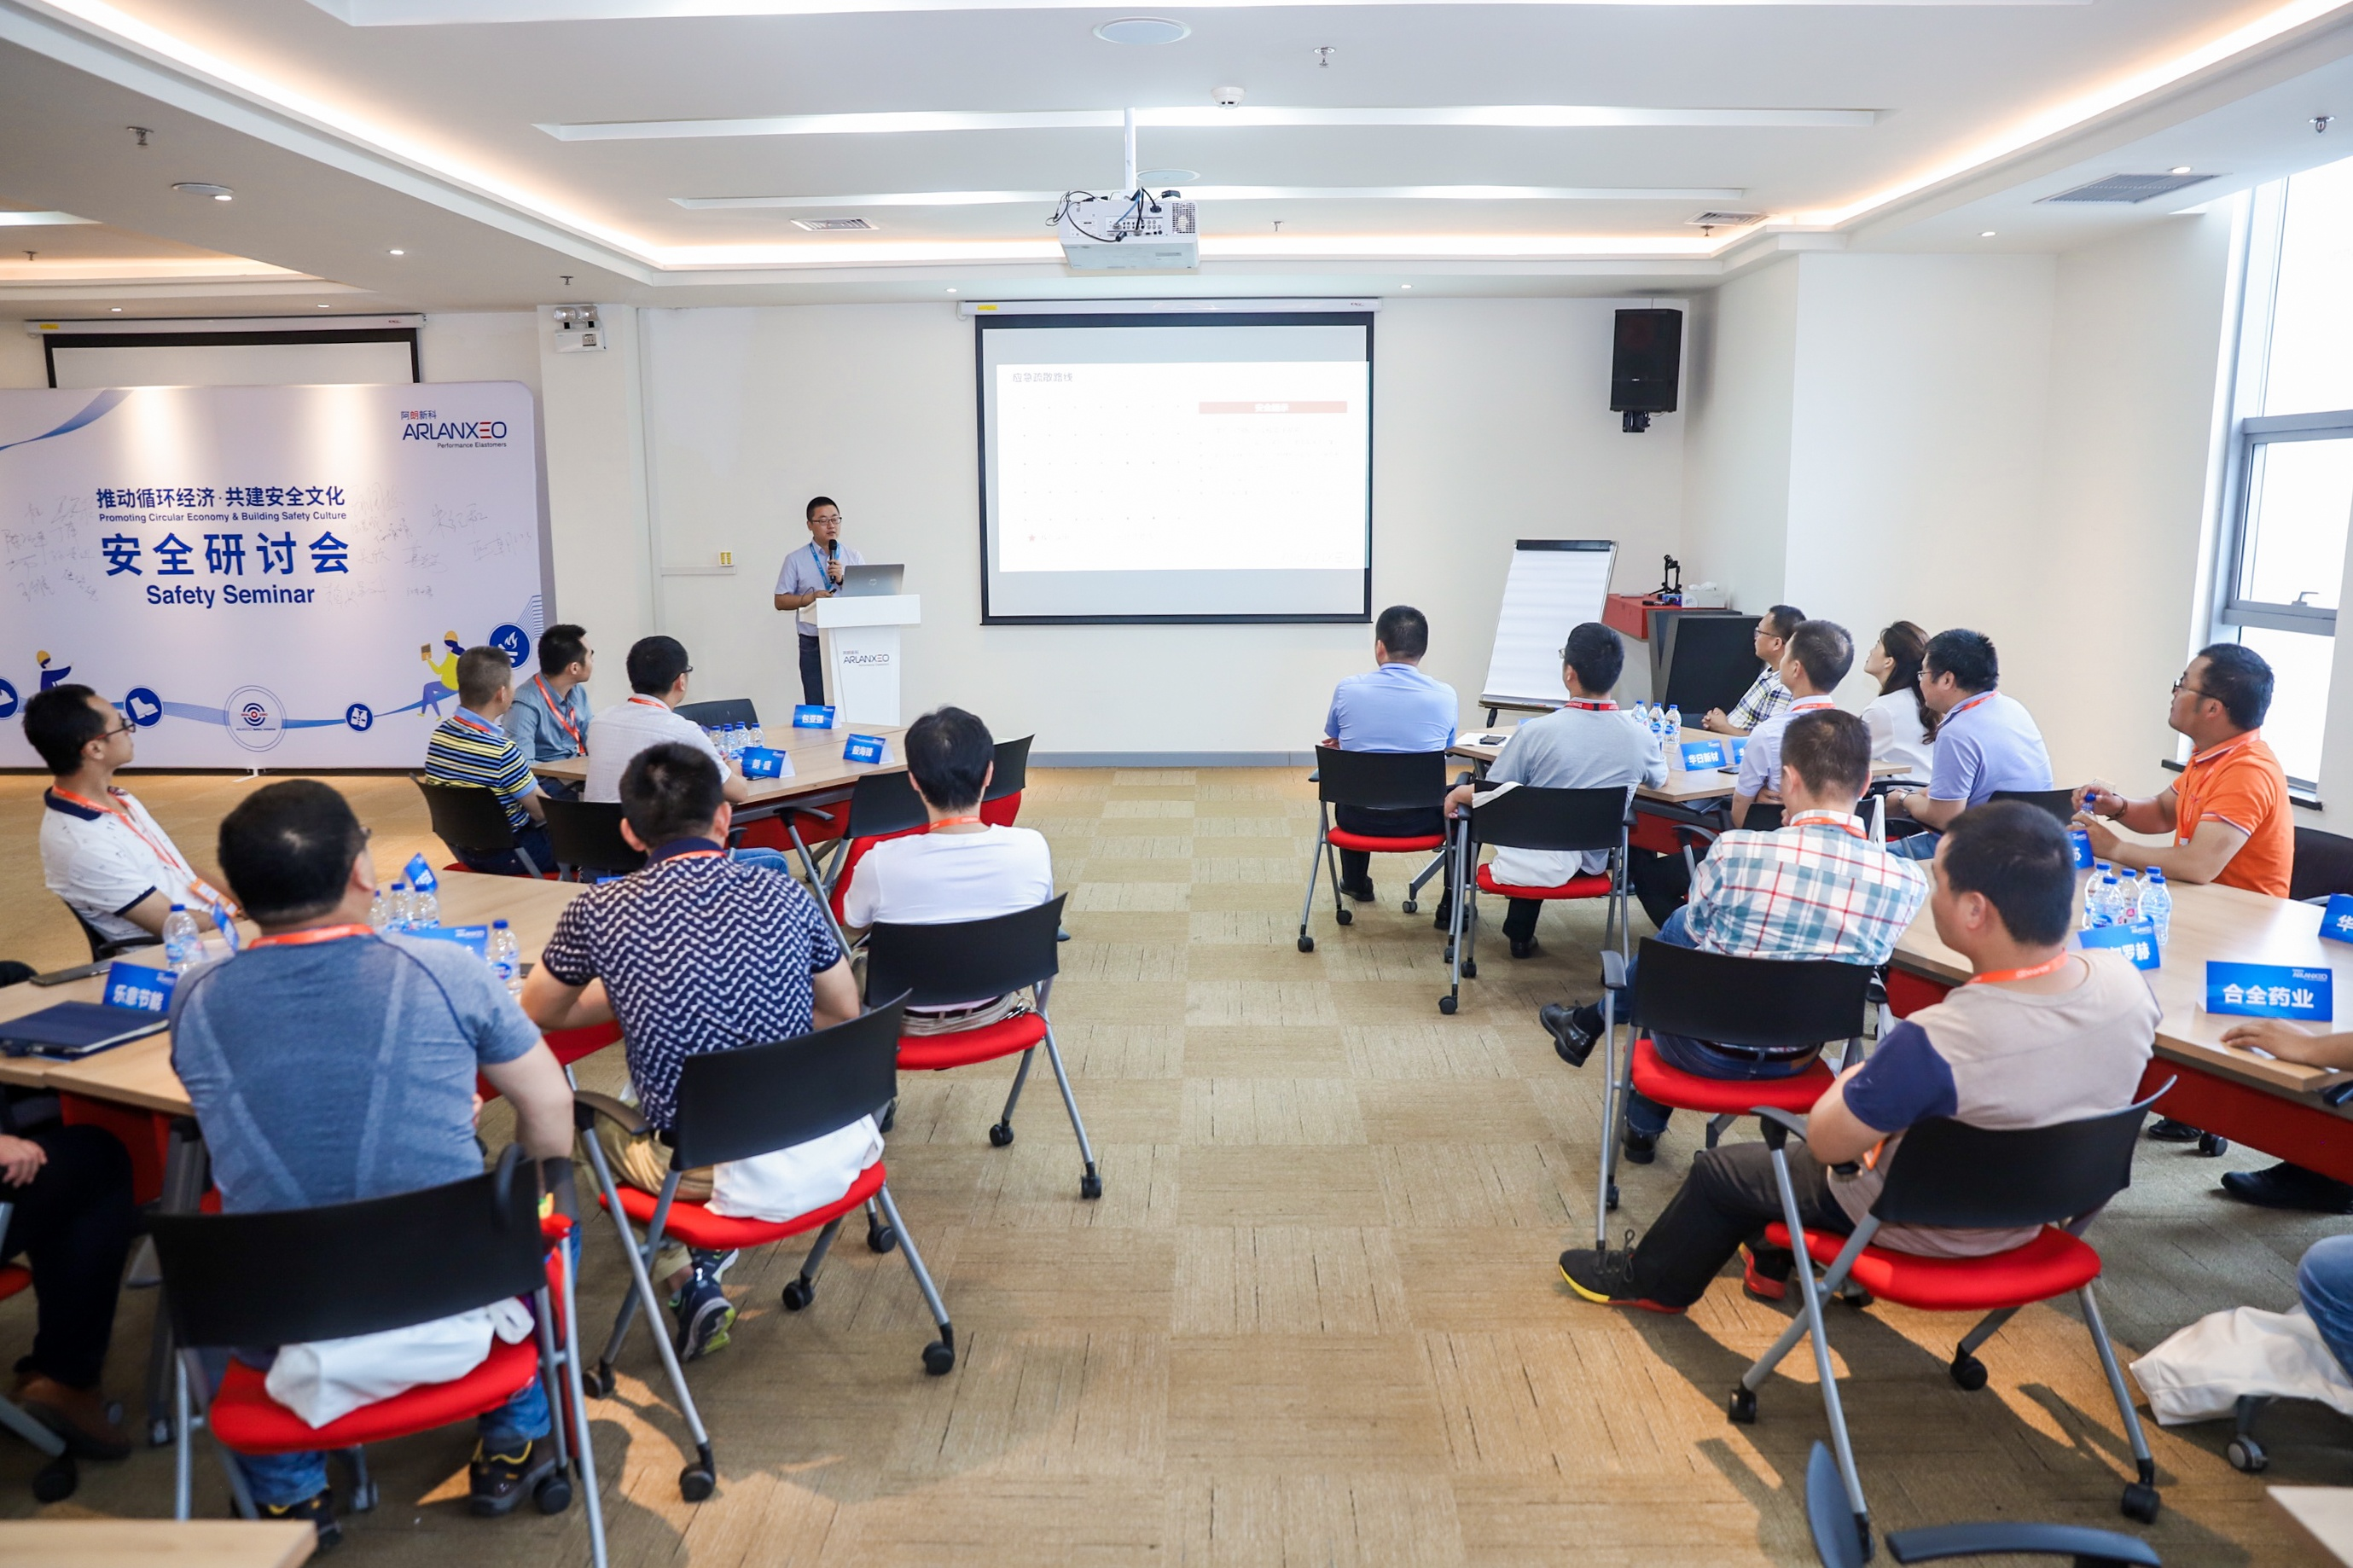 Safety seminar (Source: Arlanxeo China)